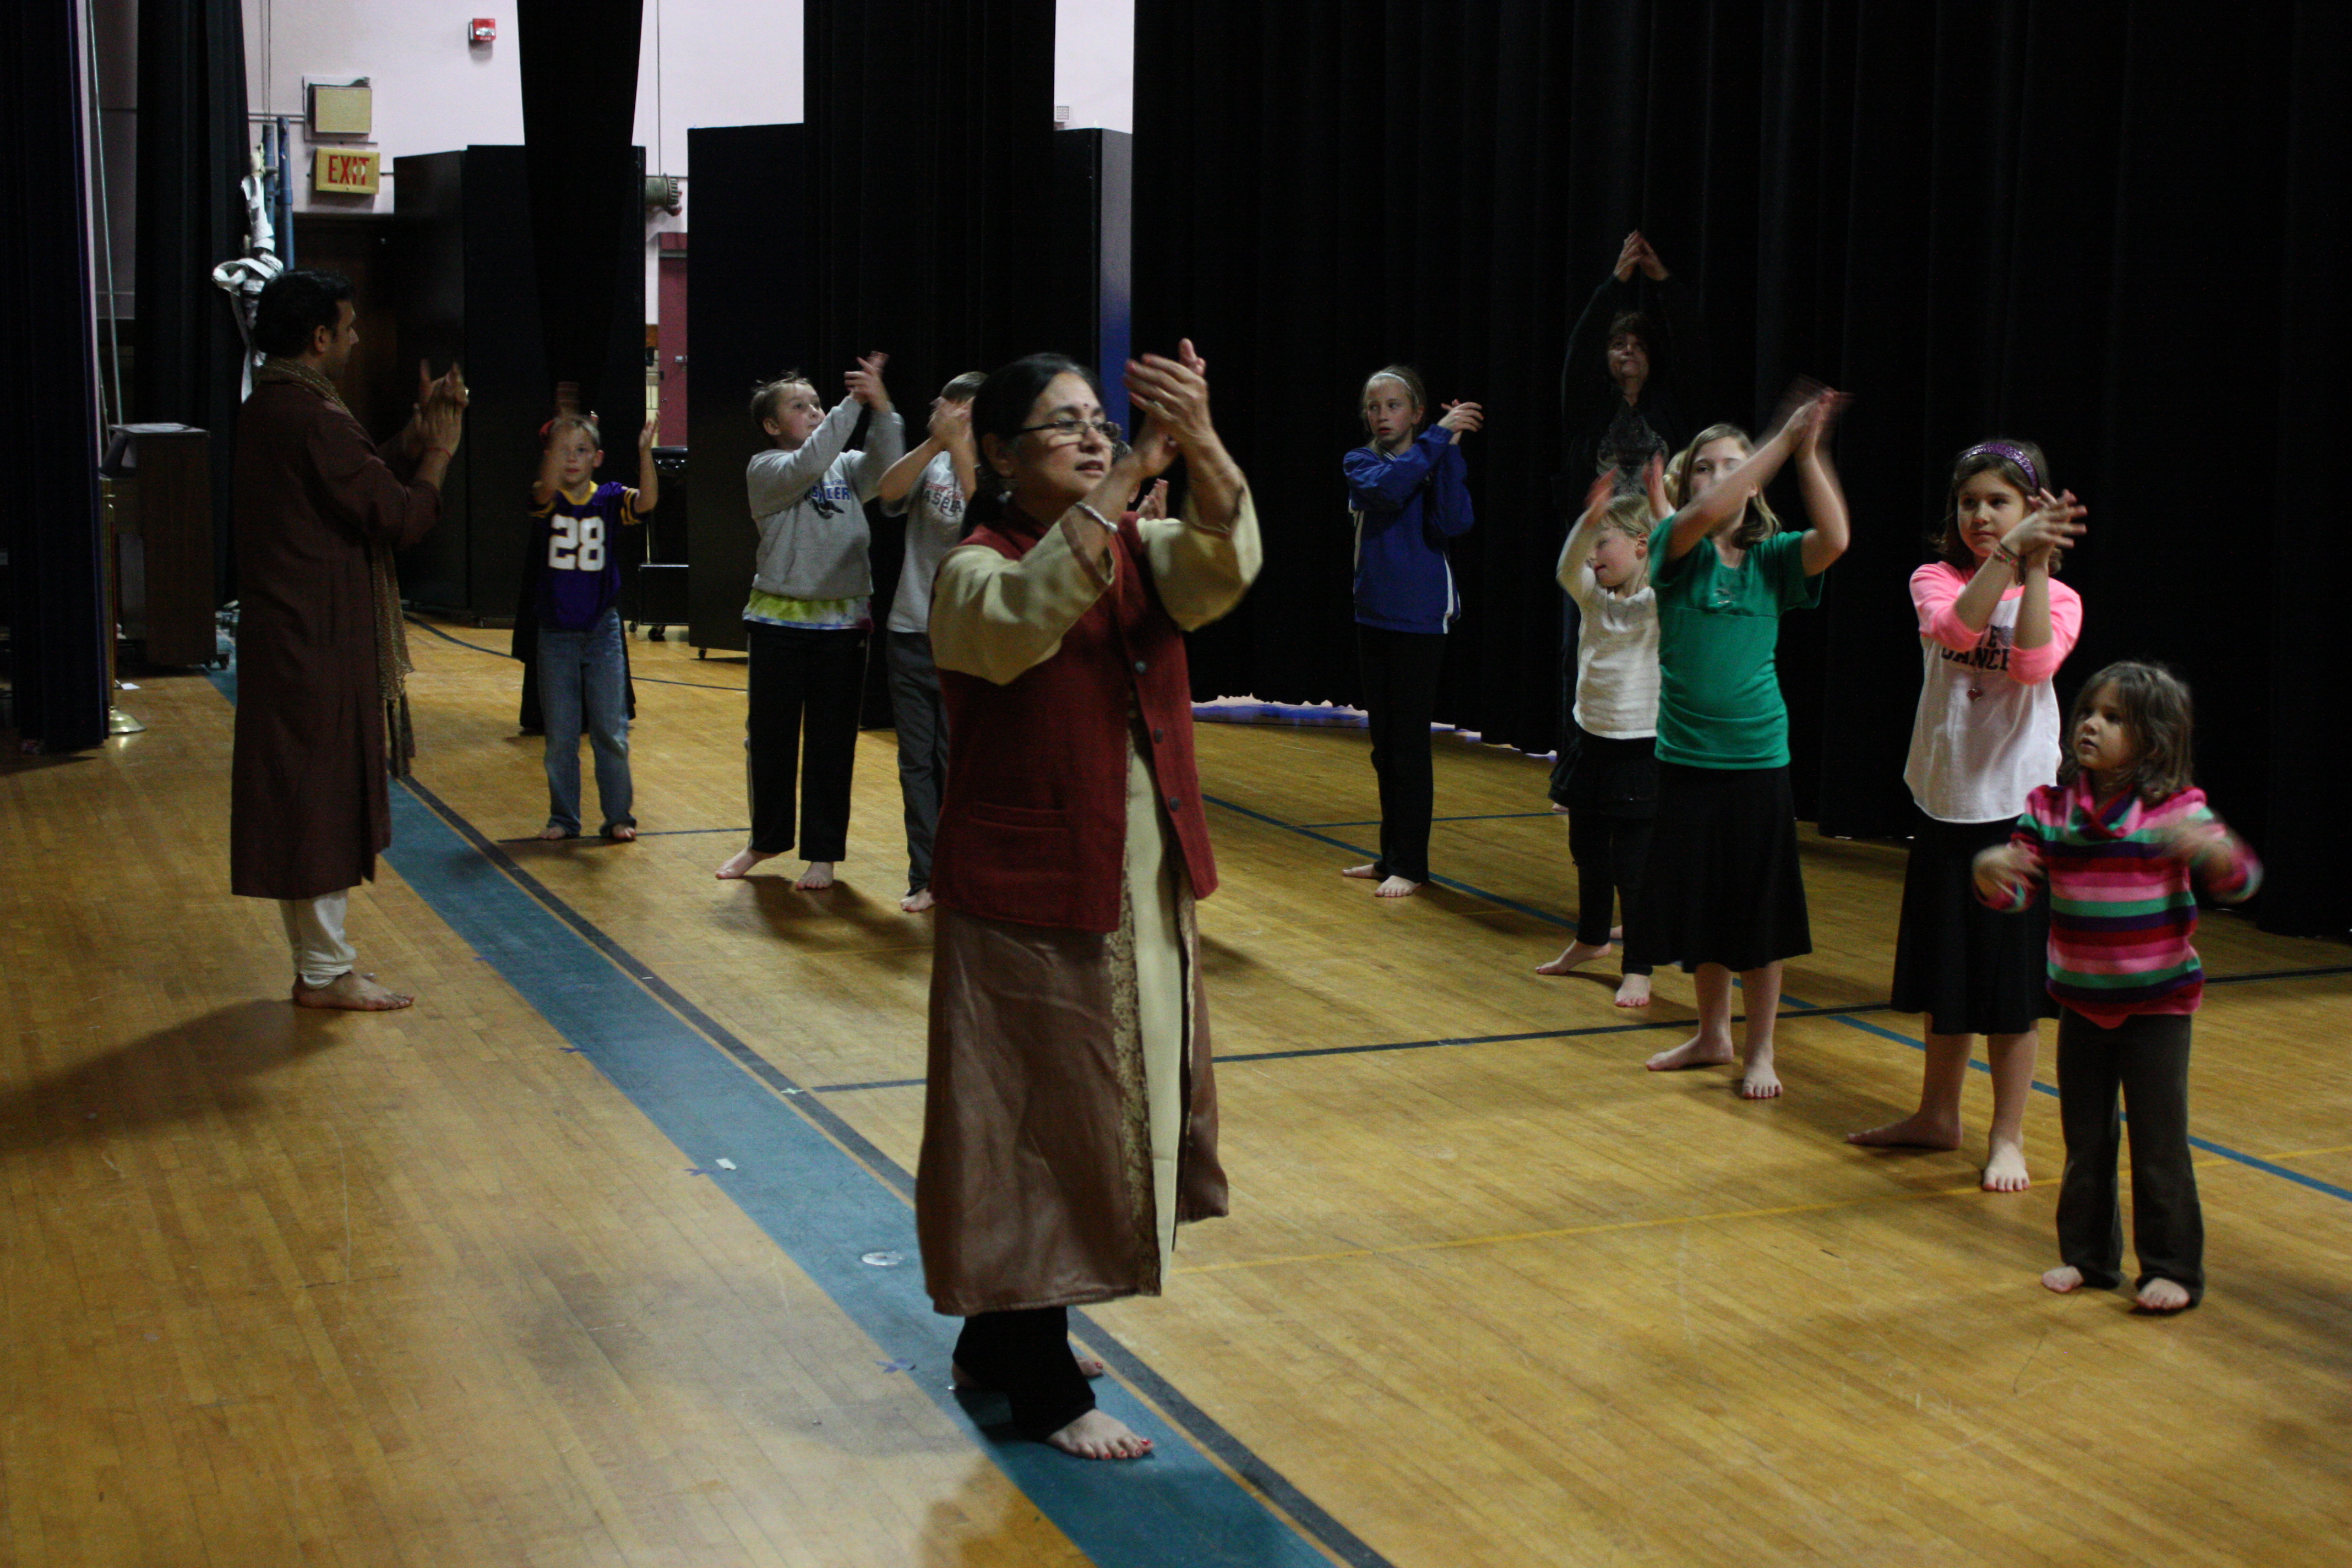 Rita Mustaphi and Anurag Sharma lead community outreach workshop